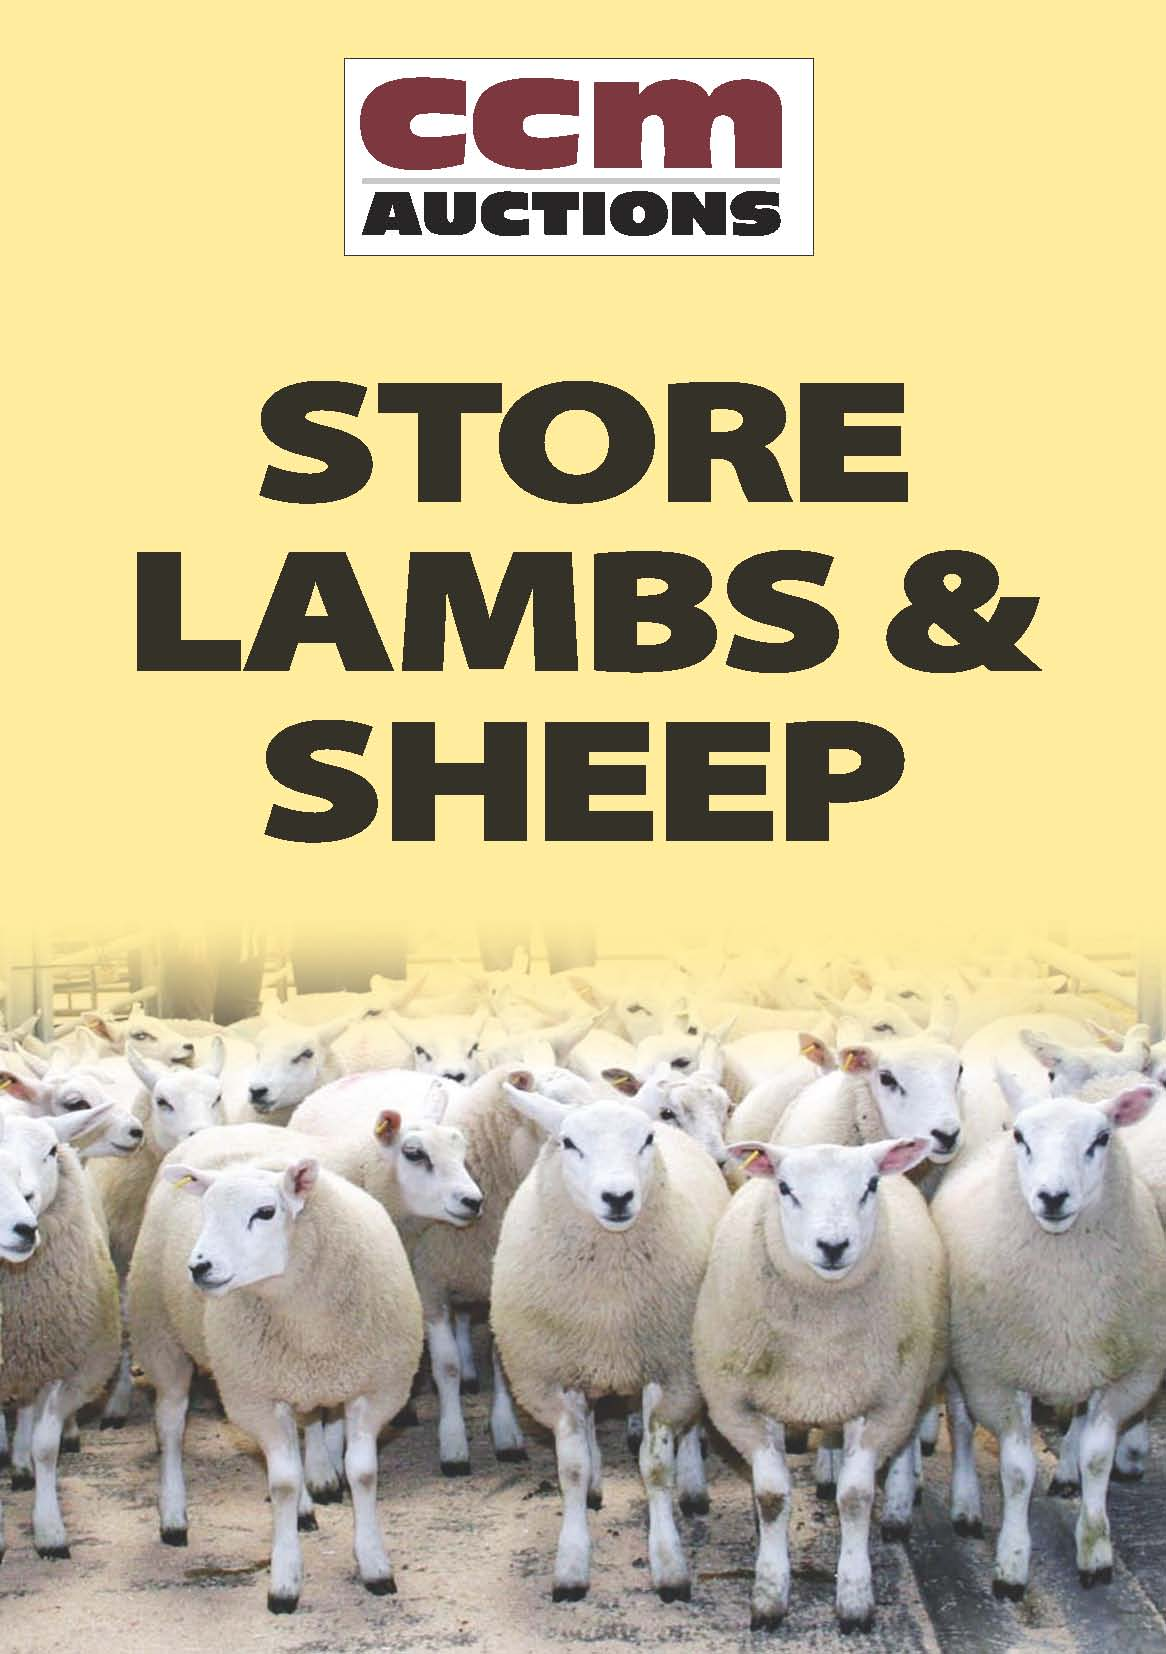 OPENING SALE OF STORE LAMBS - WEDNESDAY 15th JULY 2020